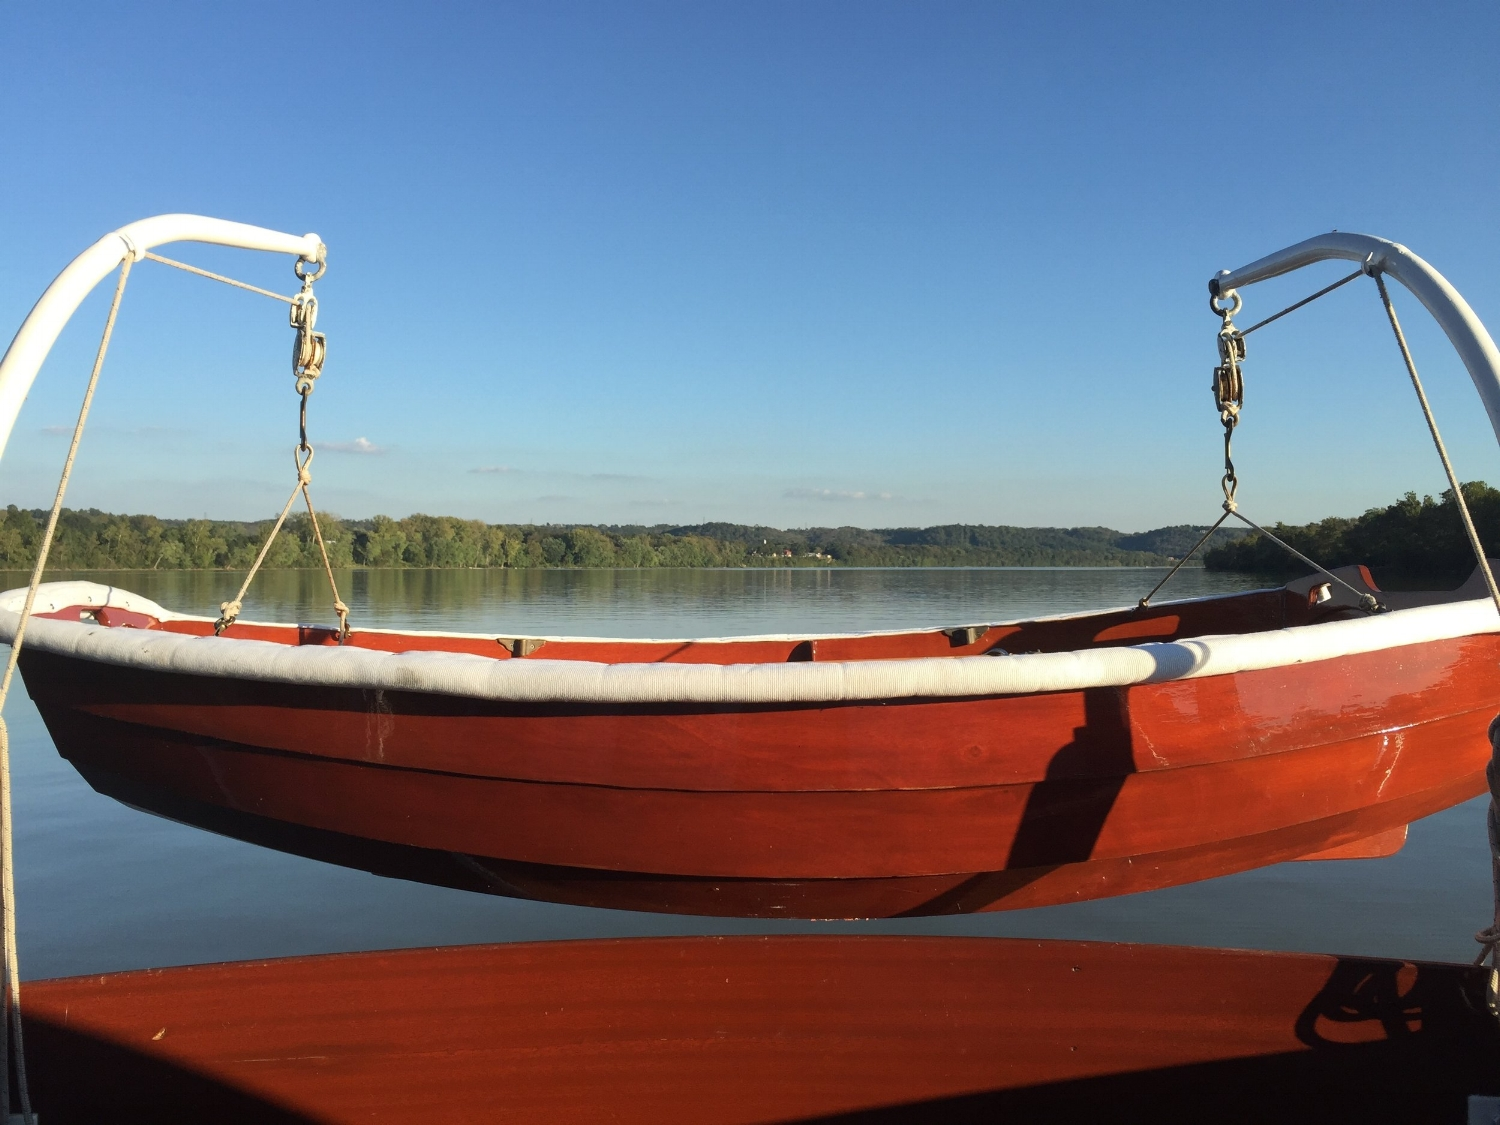 Dorothy hanging off her davits on the stern. A view of the Ohio River near Aurora, Indiana.